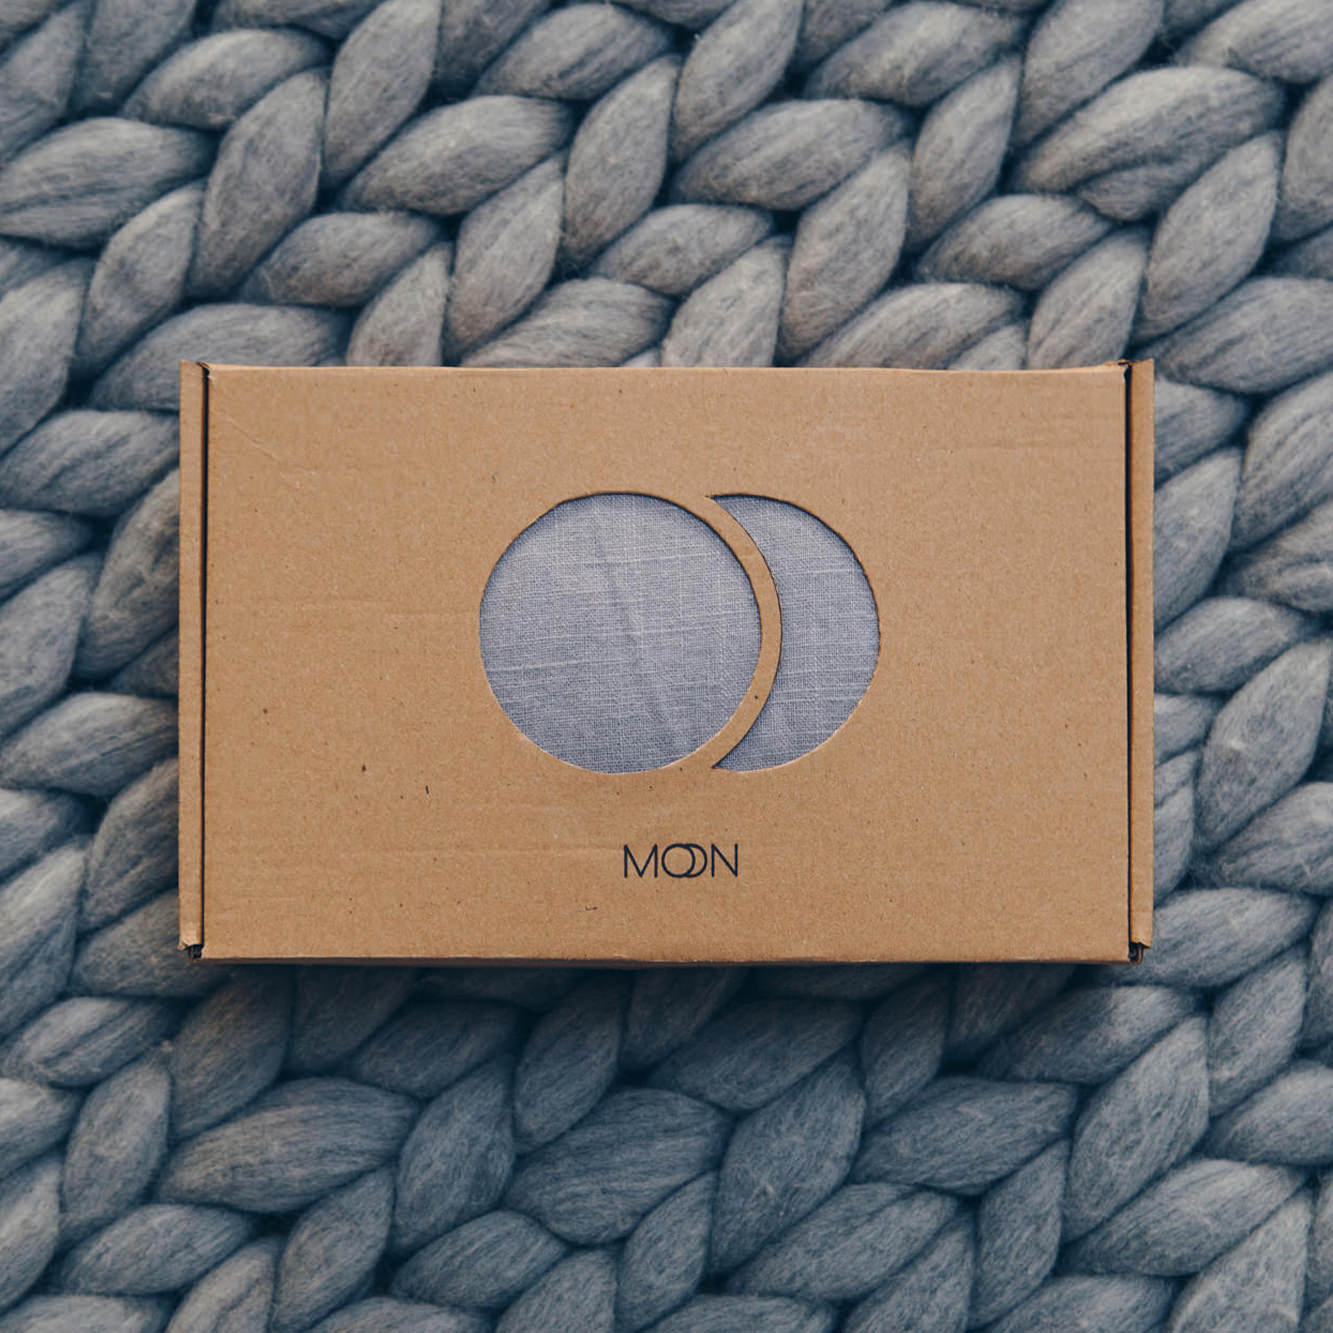 Grey Moon Ring Sling delivered in eco packing